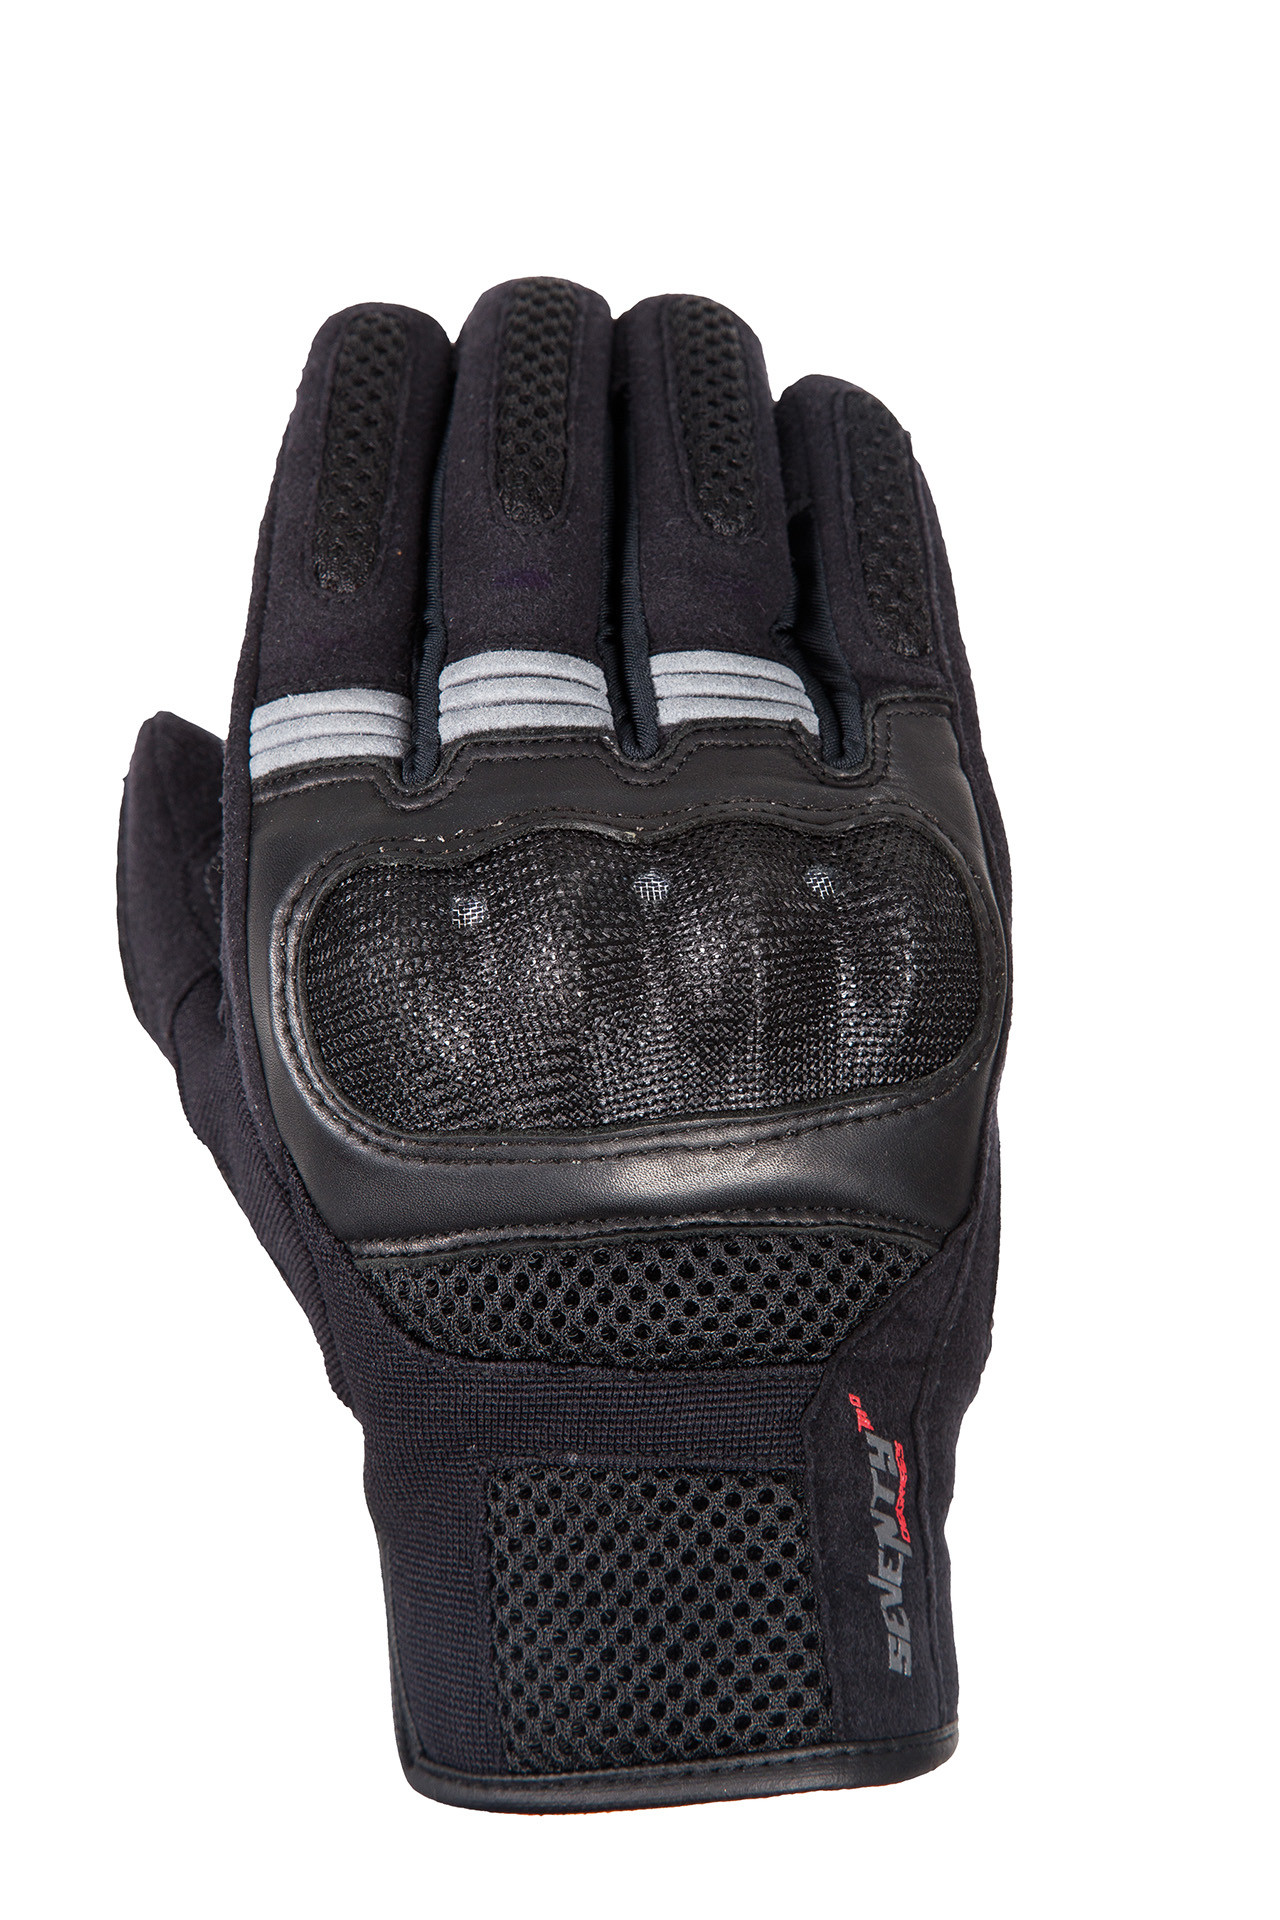 Foto de Guantes Seventy Degrees SD-T6 Touring (4/6)